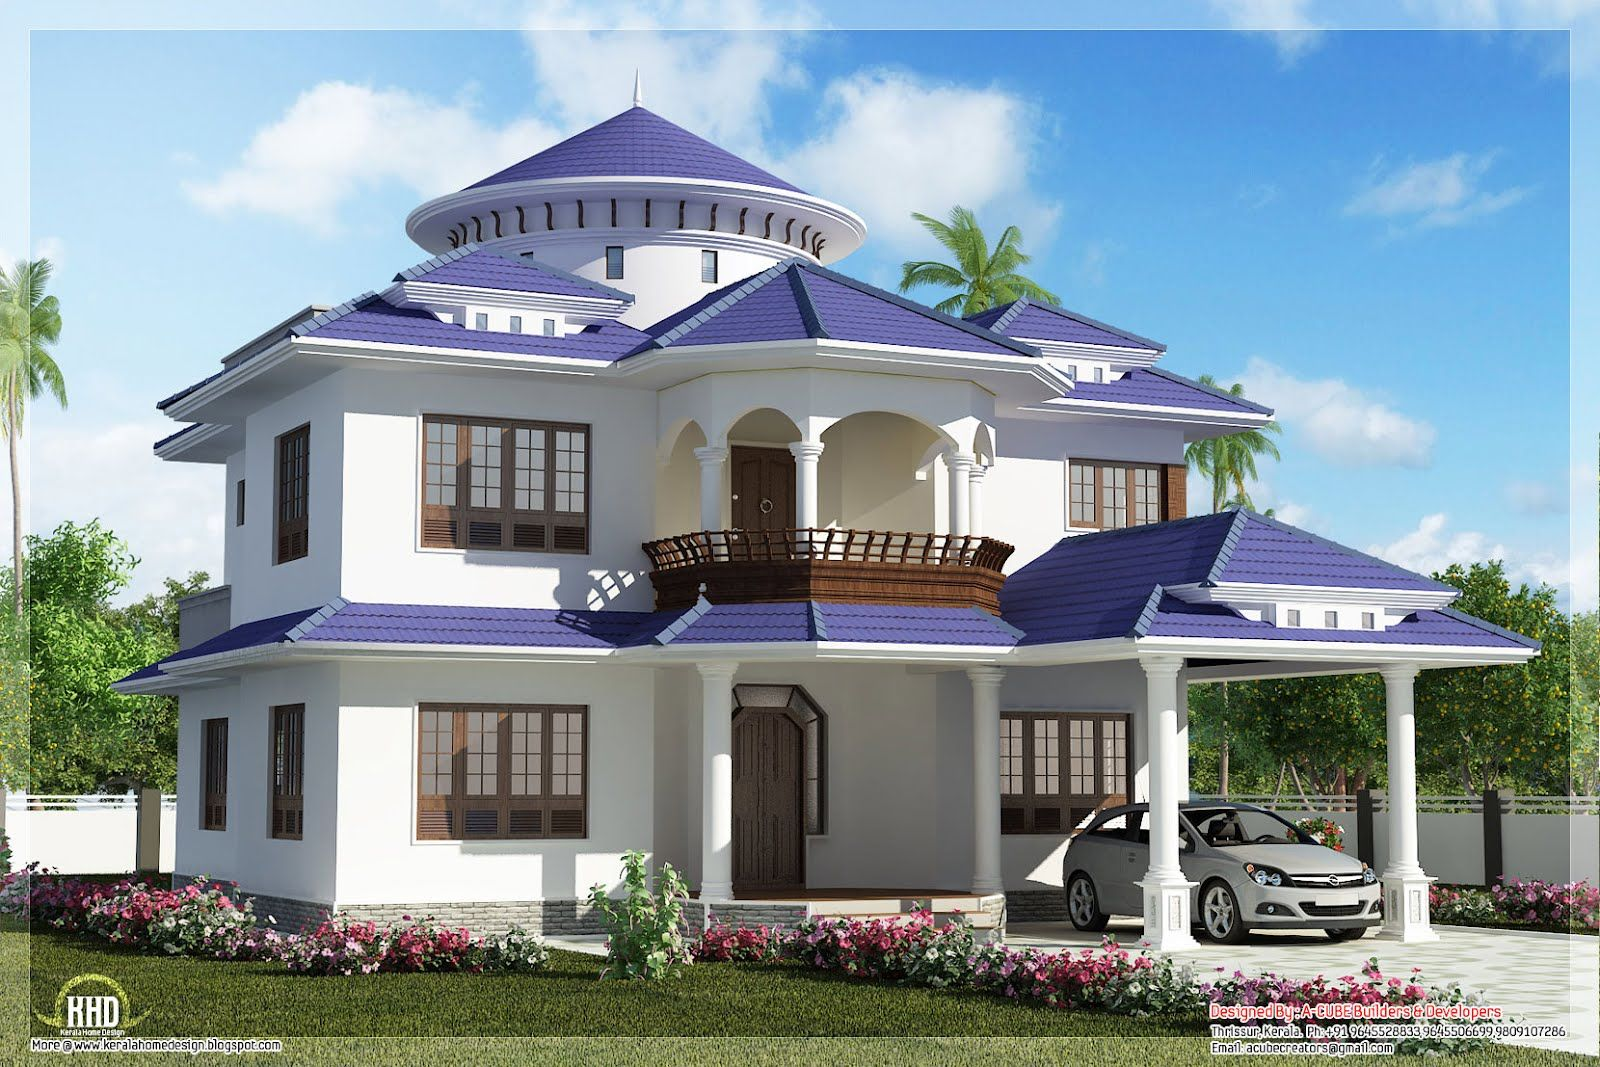 house design pictures - Home Design Pictures